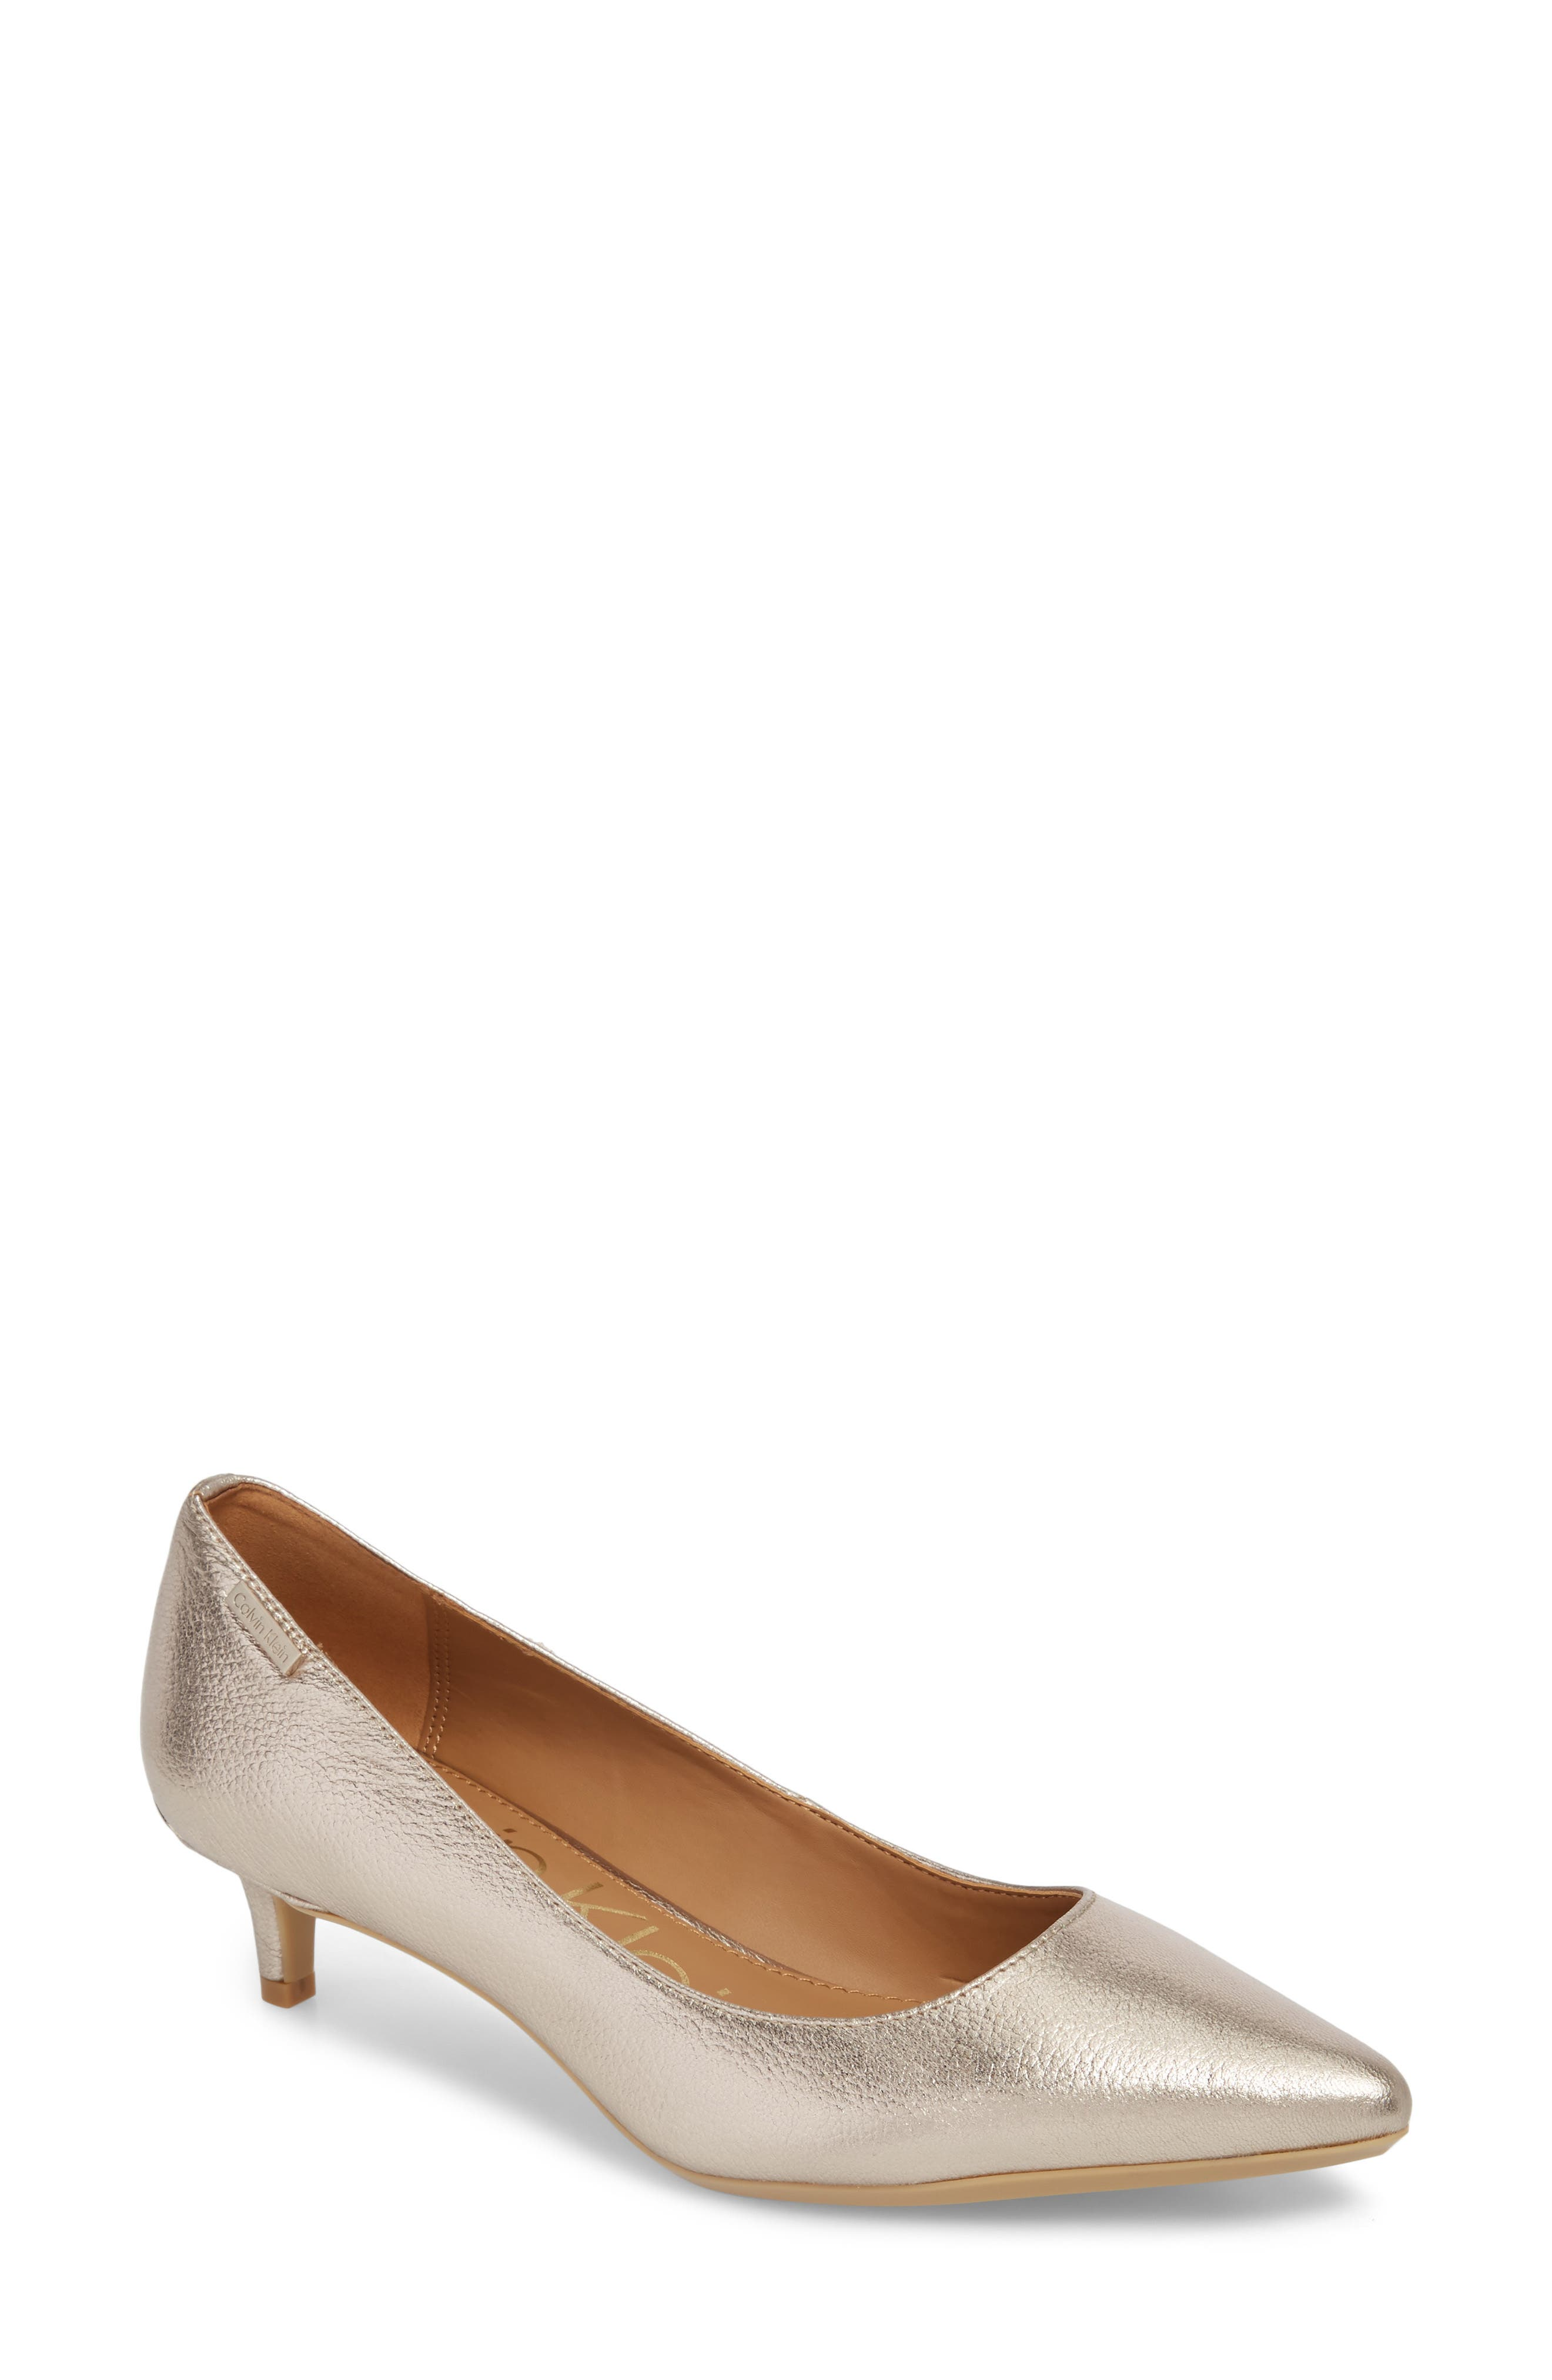 Gabrianna Pump,                         Main,                         color, SOFT PLATINUM LEATHER